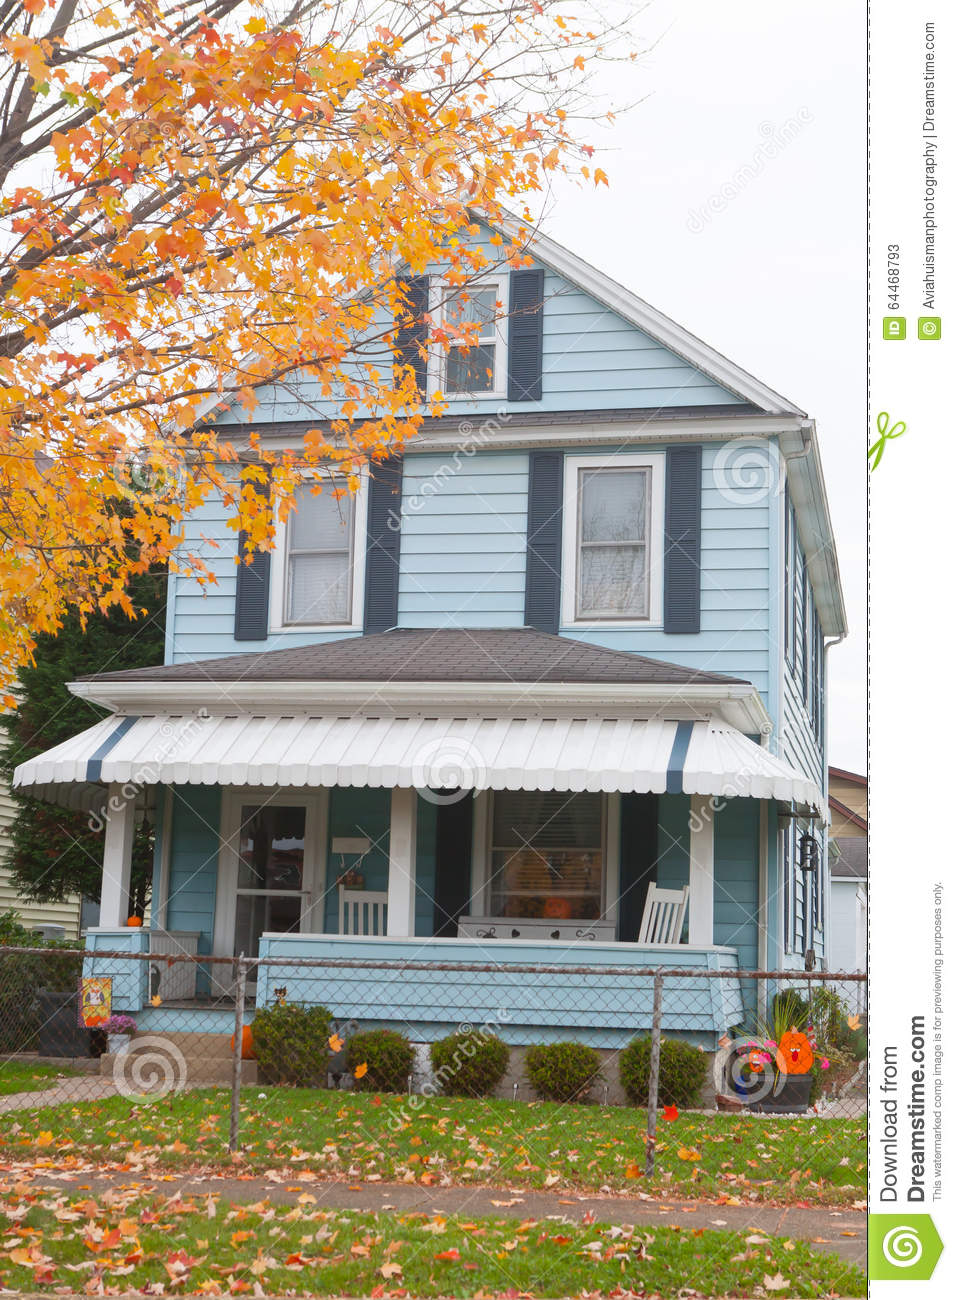 Typical family home blue siding and halloween decor stock for Blue siding house